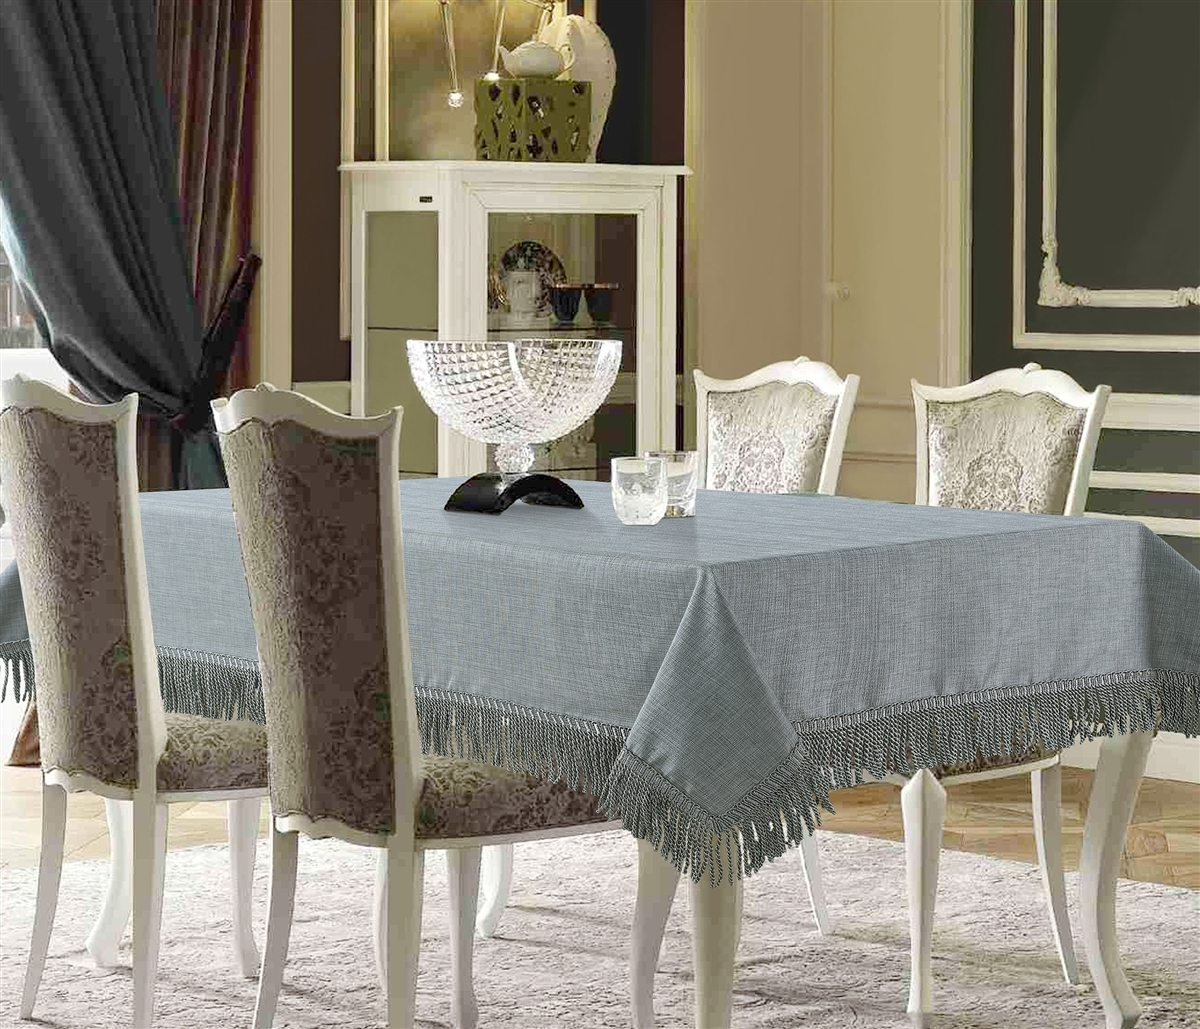 Silver Linen Like Tablecloth with Fringes